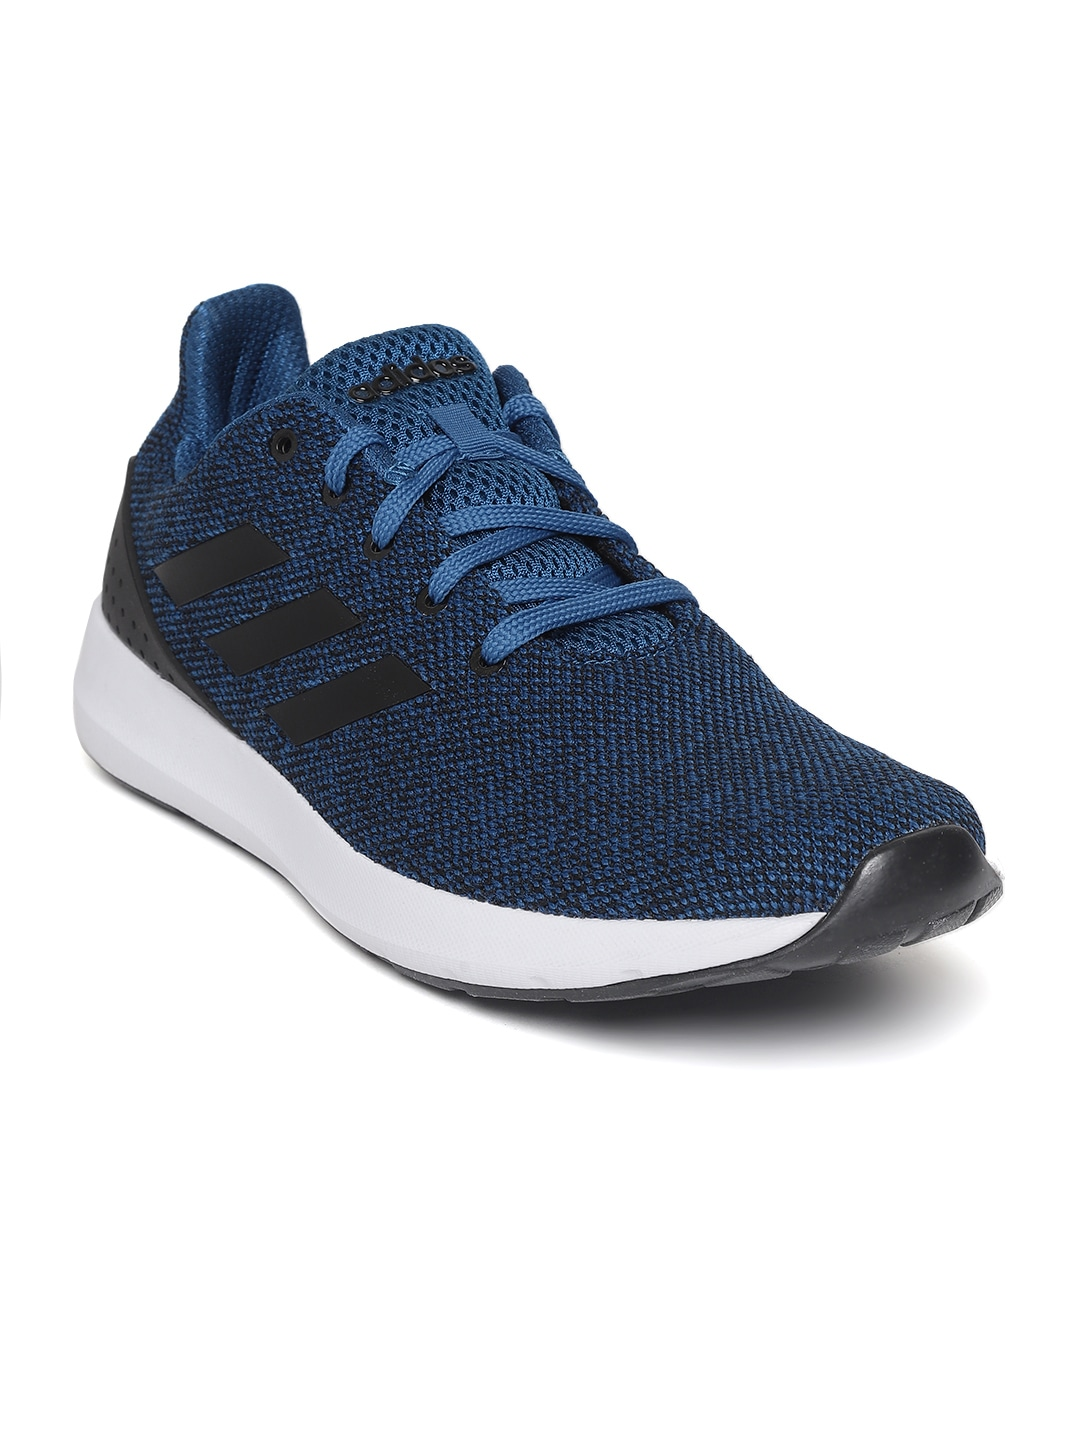 Blue & Black Raddis 1.0 Running Shoes